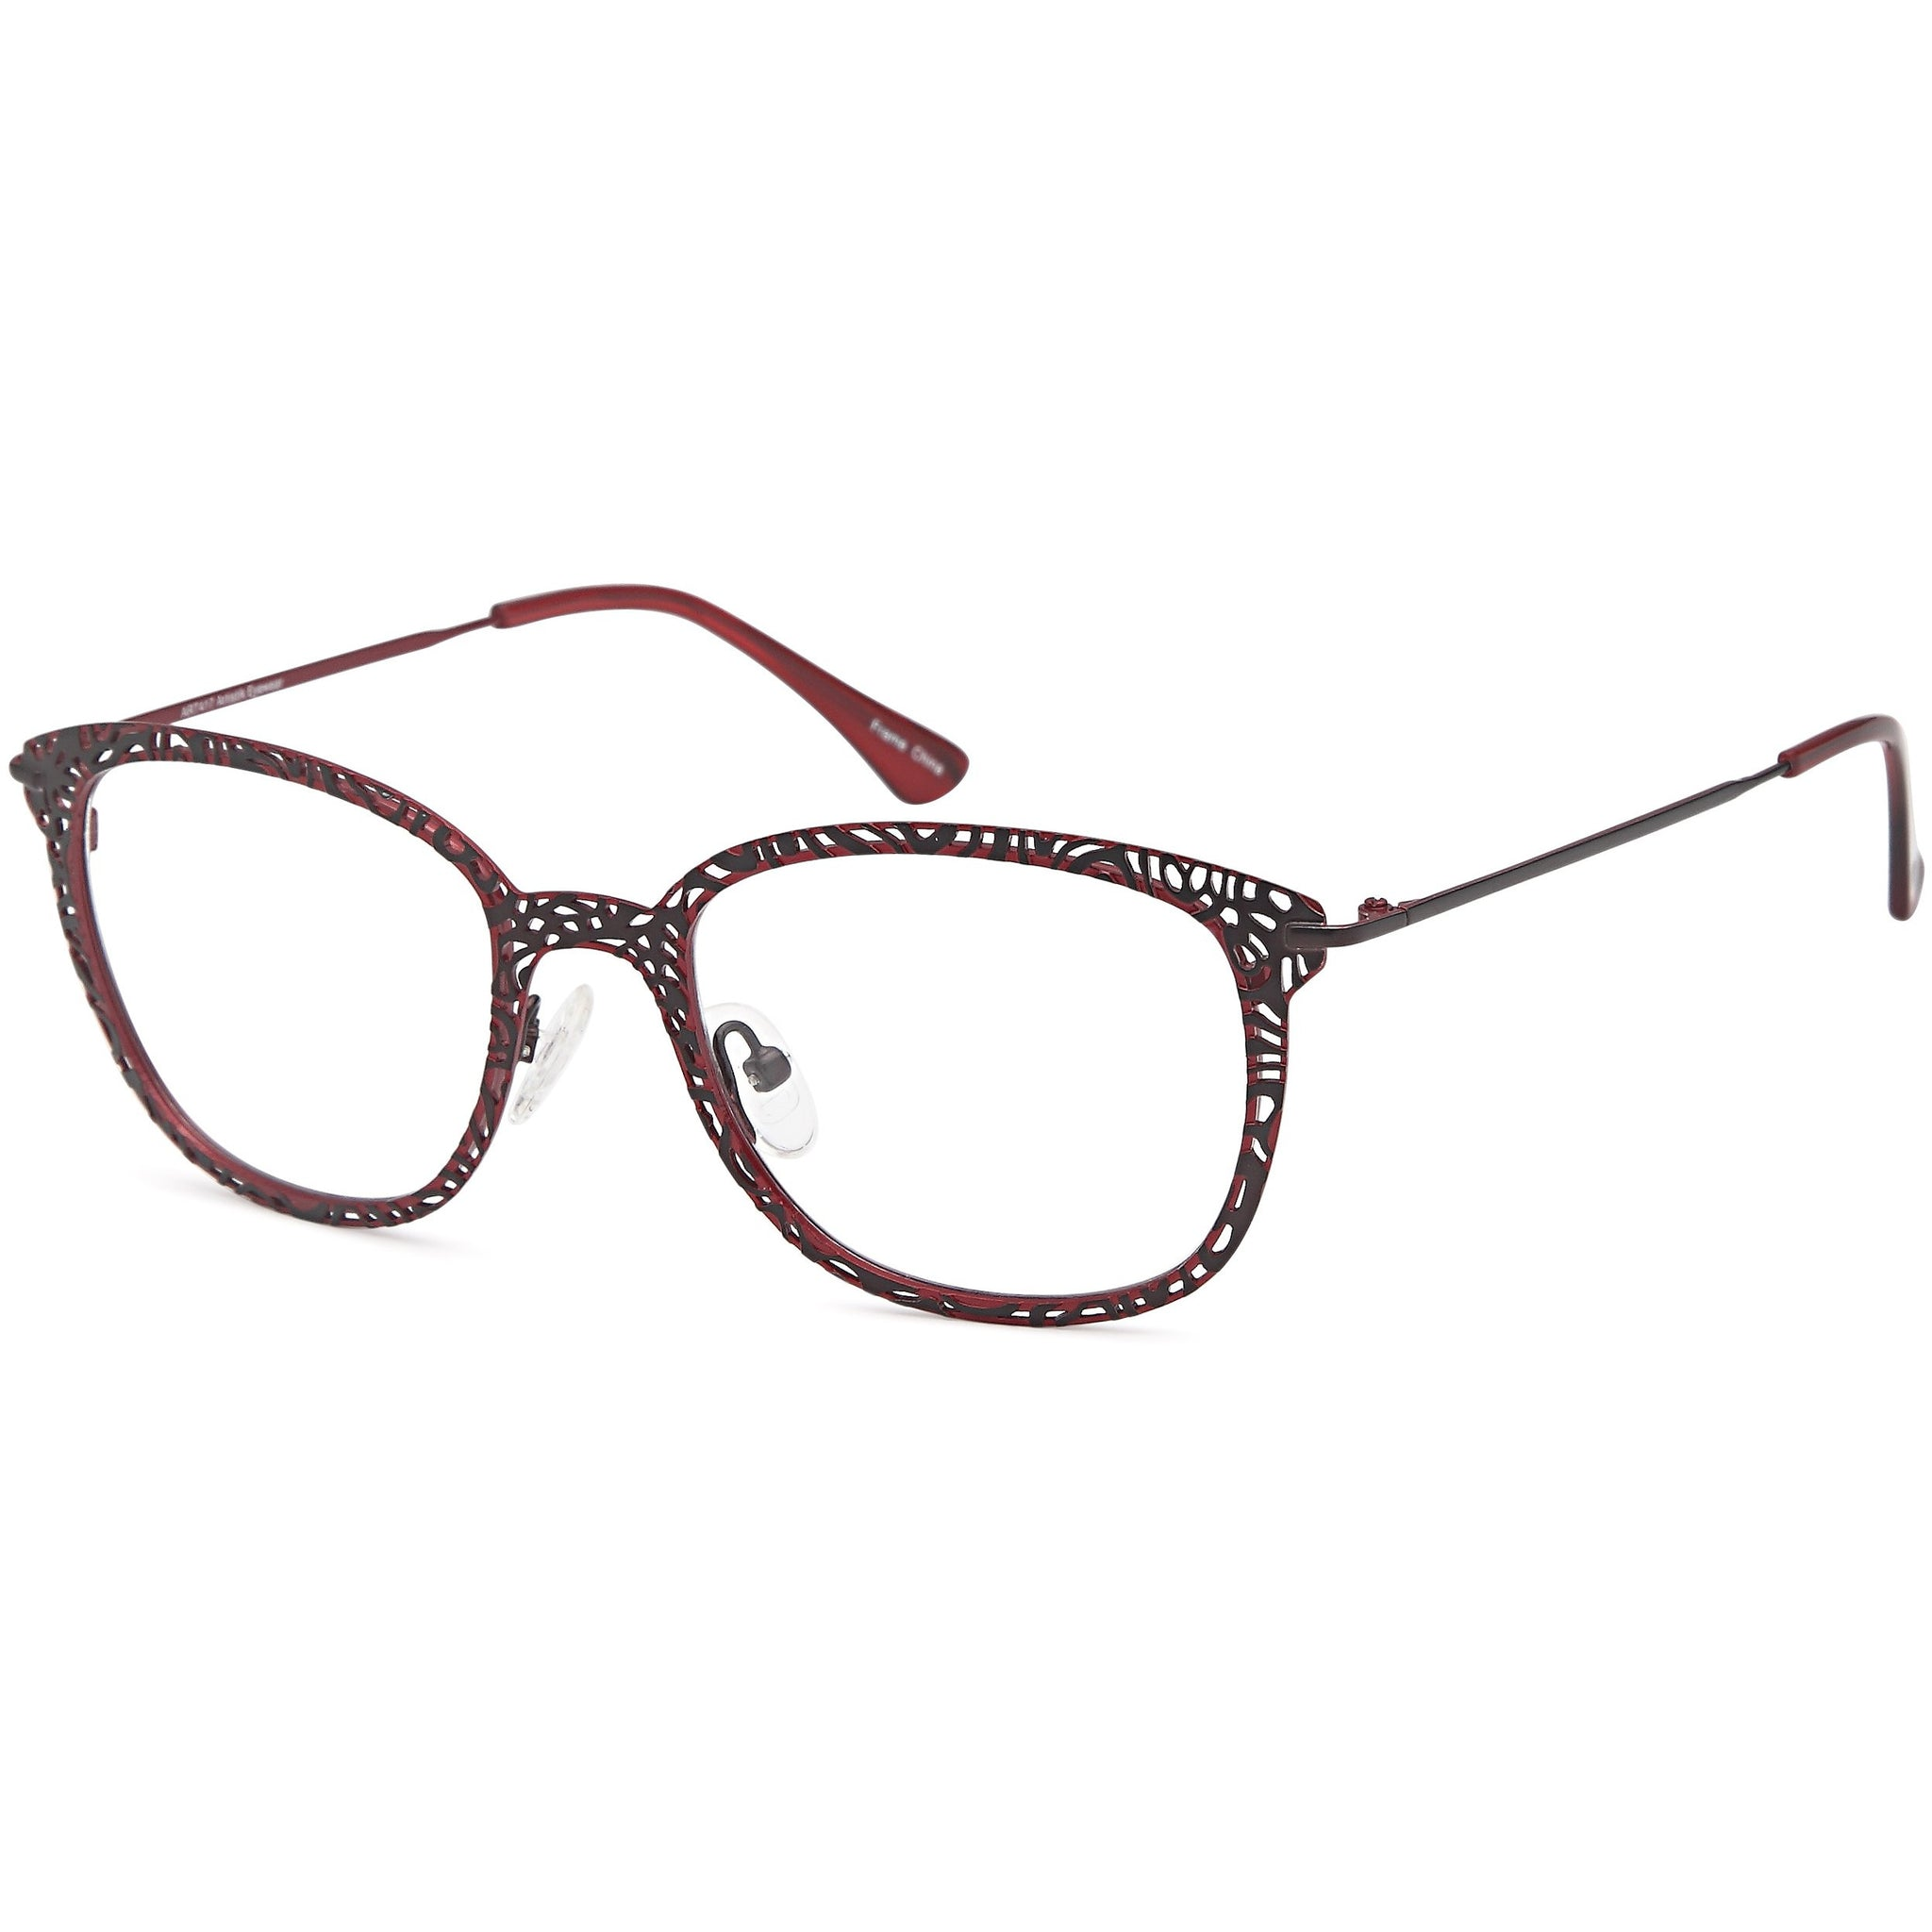 Sophistics Prescription Glasses ART 417 Frame